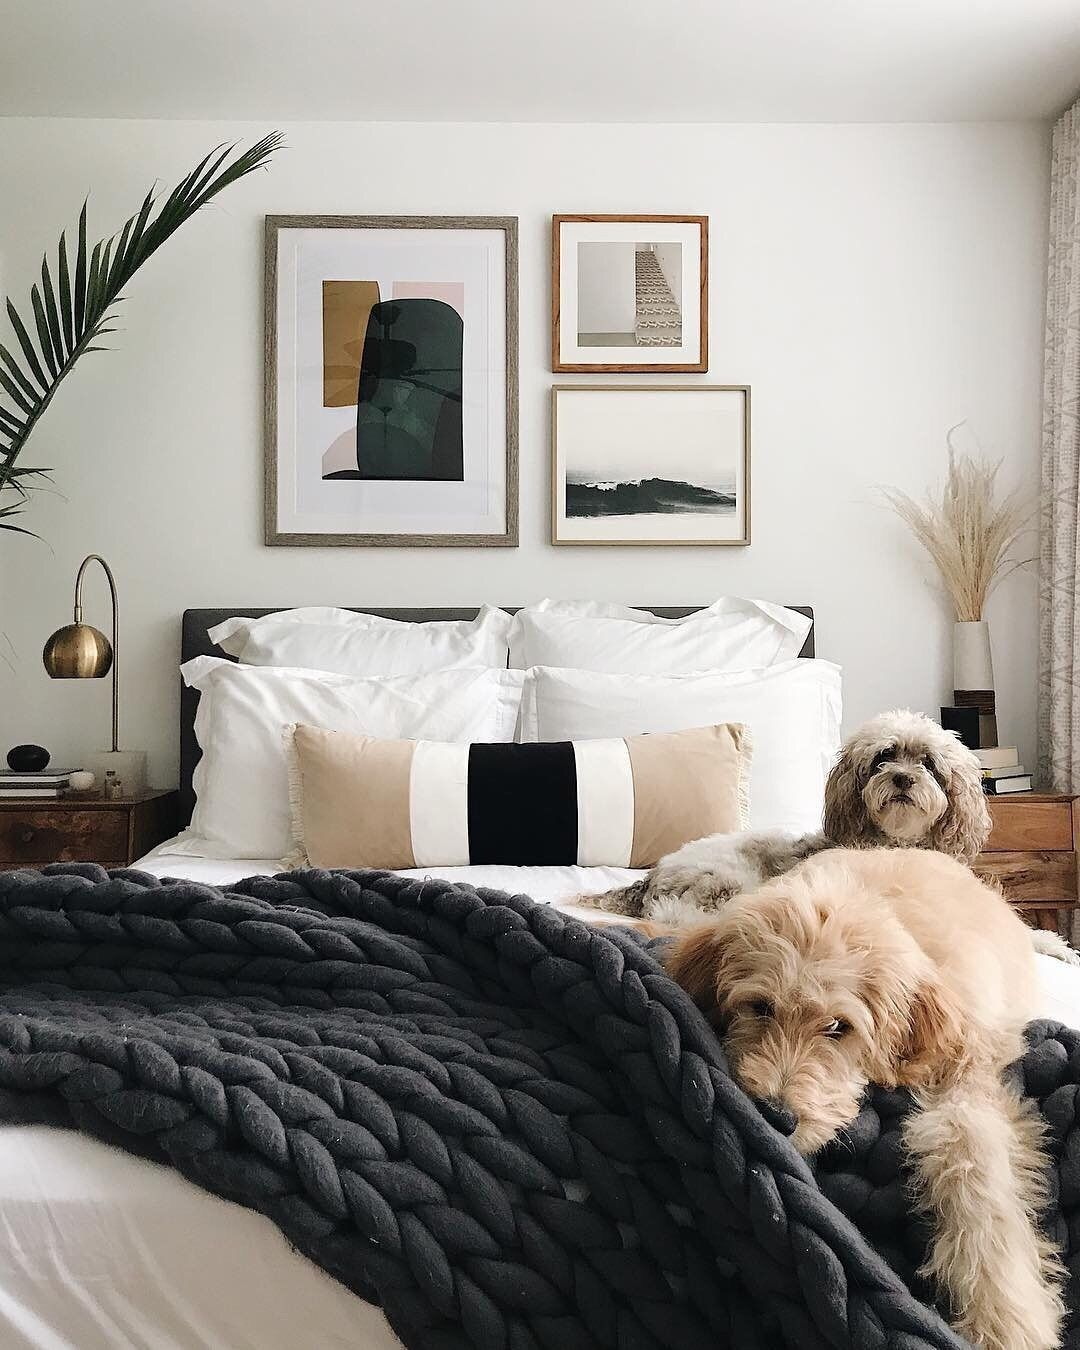 Apartment Therapy On Instagram The Fluffiness The Coziness It S Almost Too Much To Bear Almost Image Home Decor Bedroom Home Bedroom Bedroom Interior